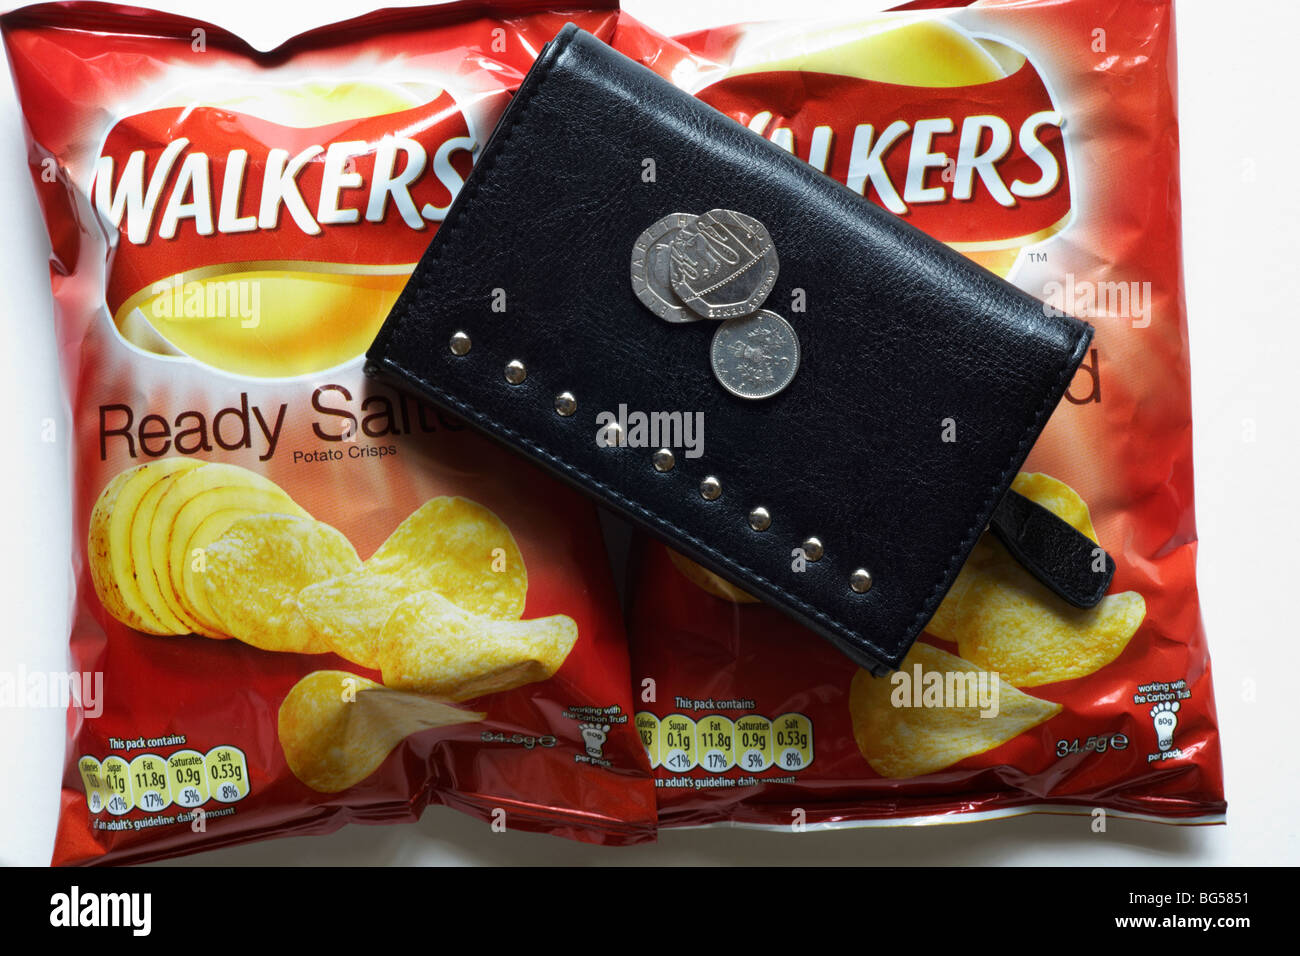 Two packets Walkers ready salted crisps and purse with money - Stock Image